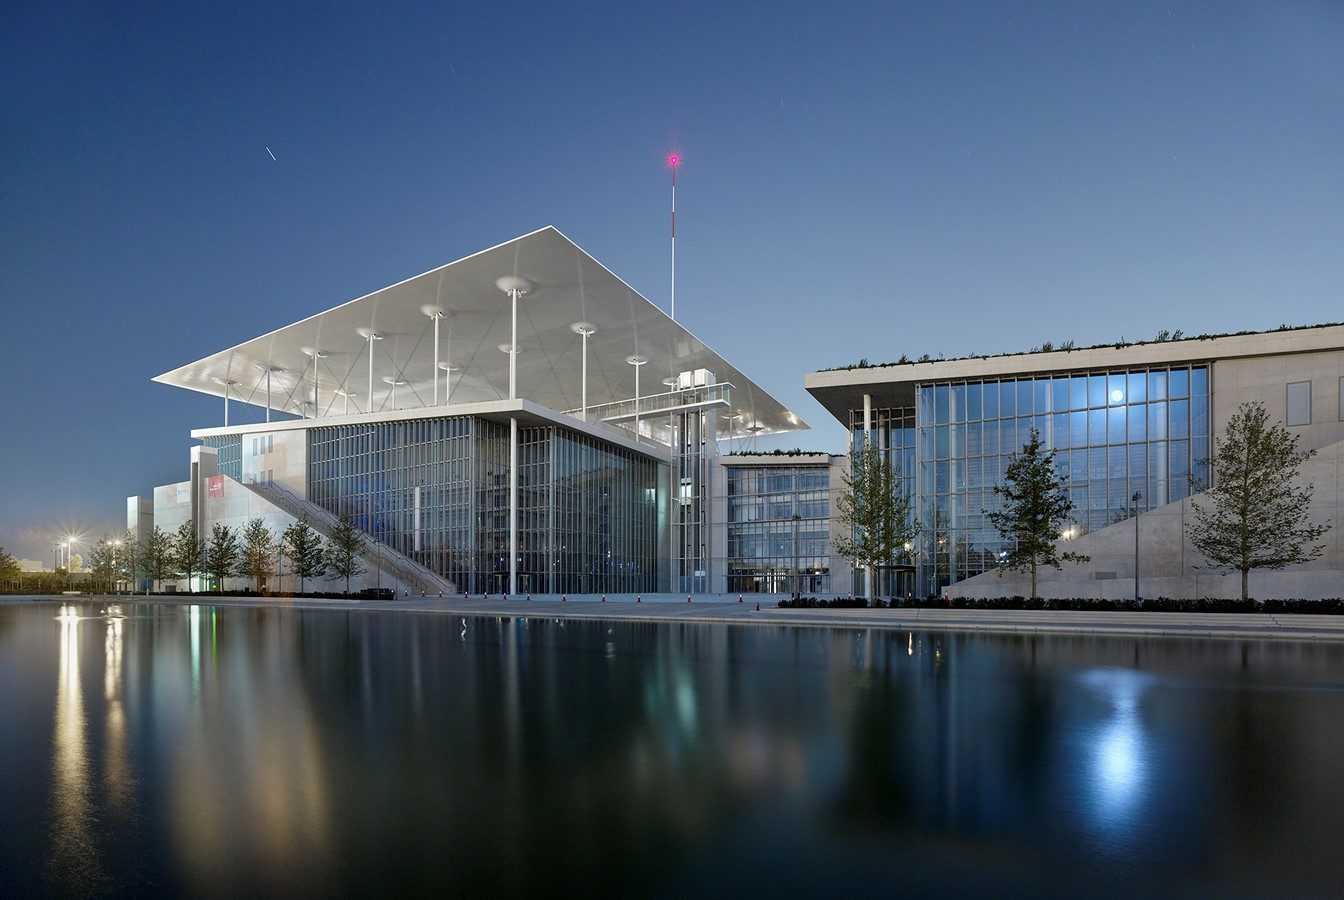 10 things to remember while designing cultural centers - Sheet3